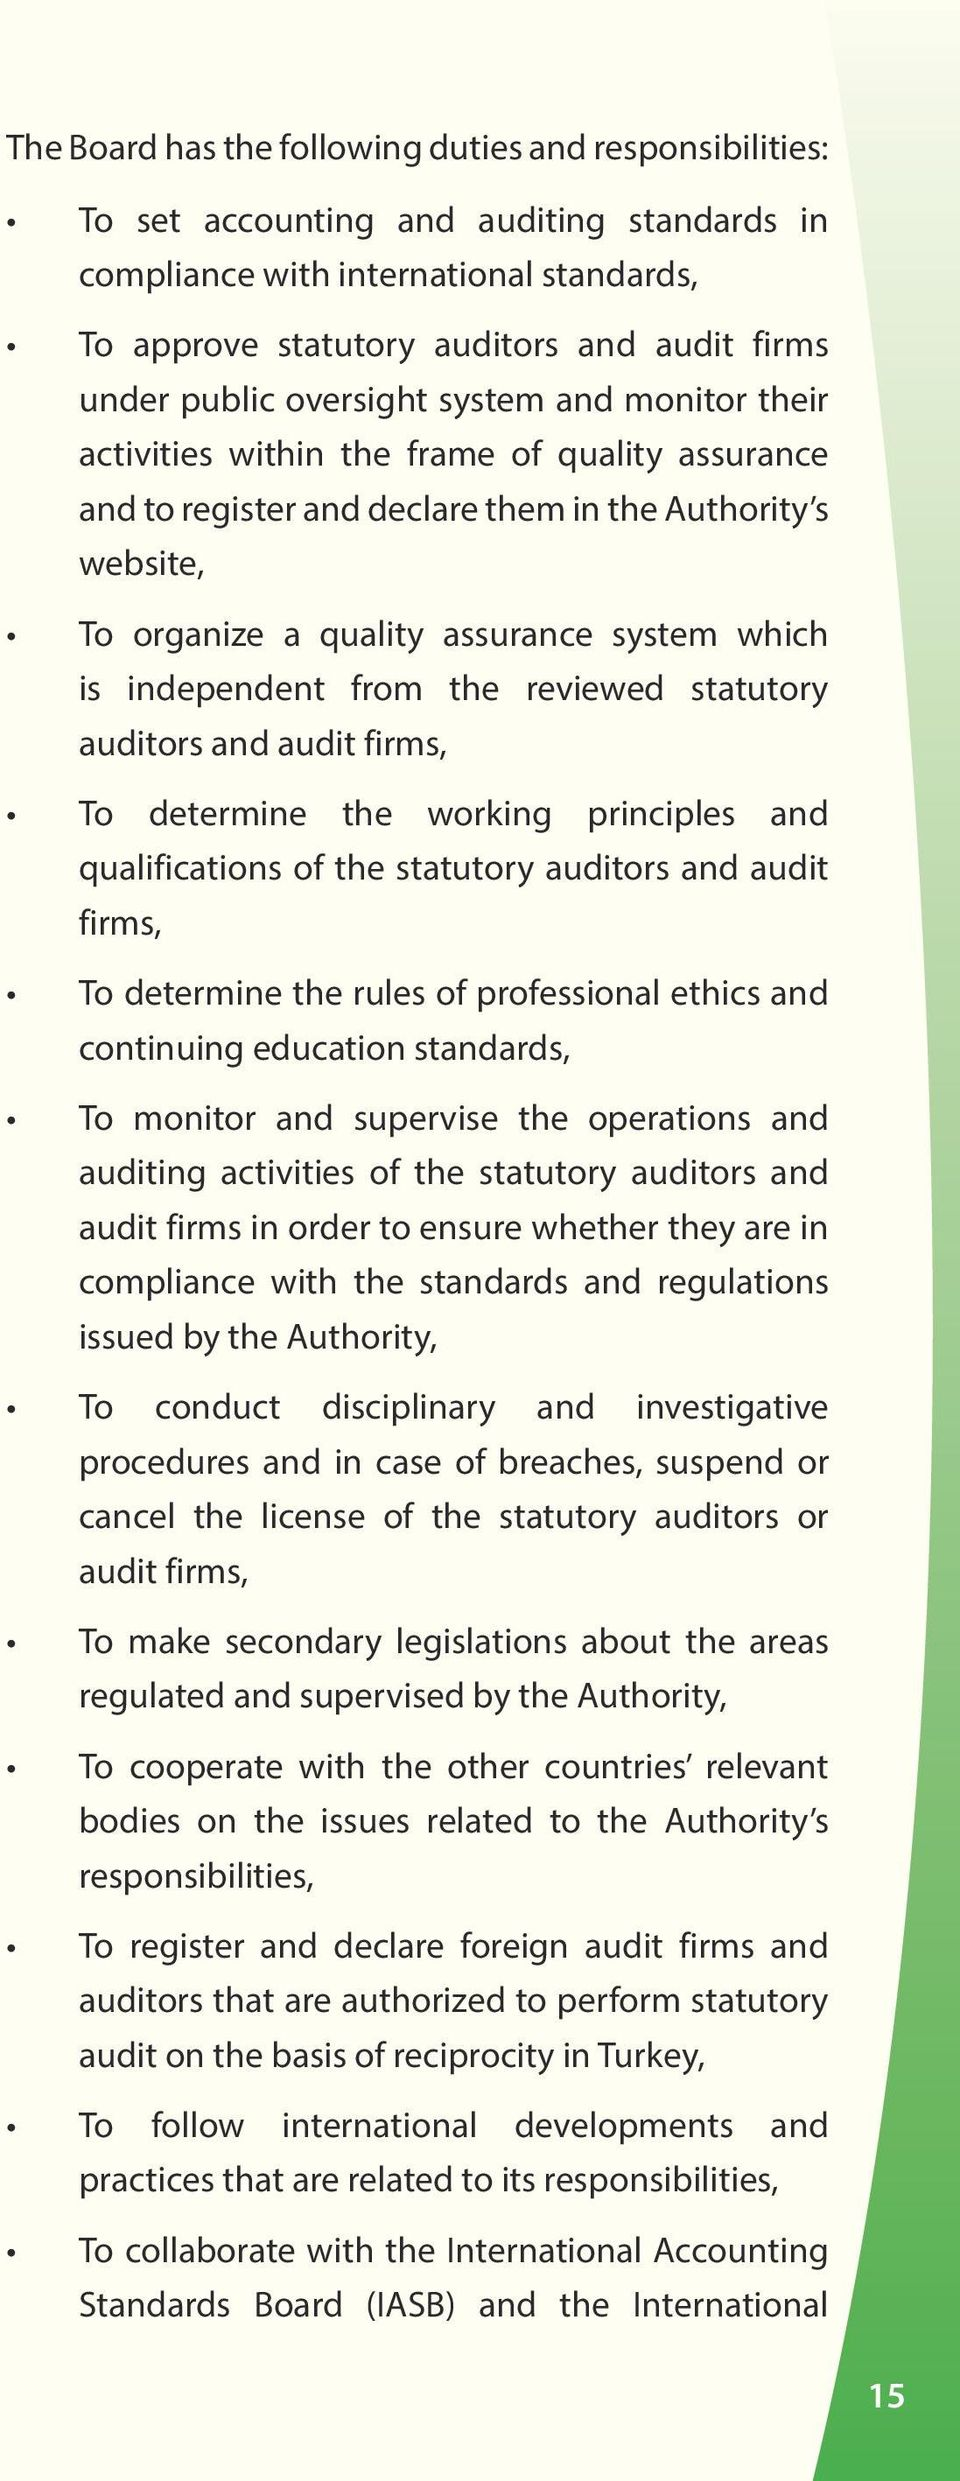 independent from the reviewed statutory auditors and audit firms, To determine the working principles and qualifications of the statutory auditors and audit firms, To determine the rules of